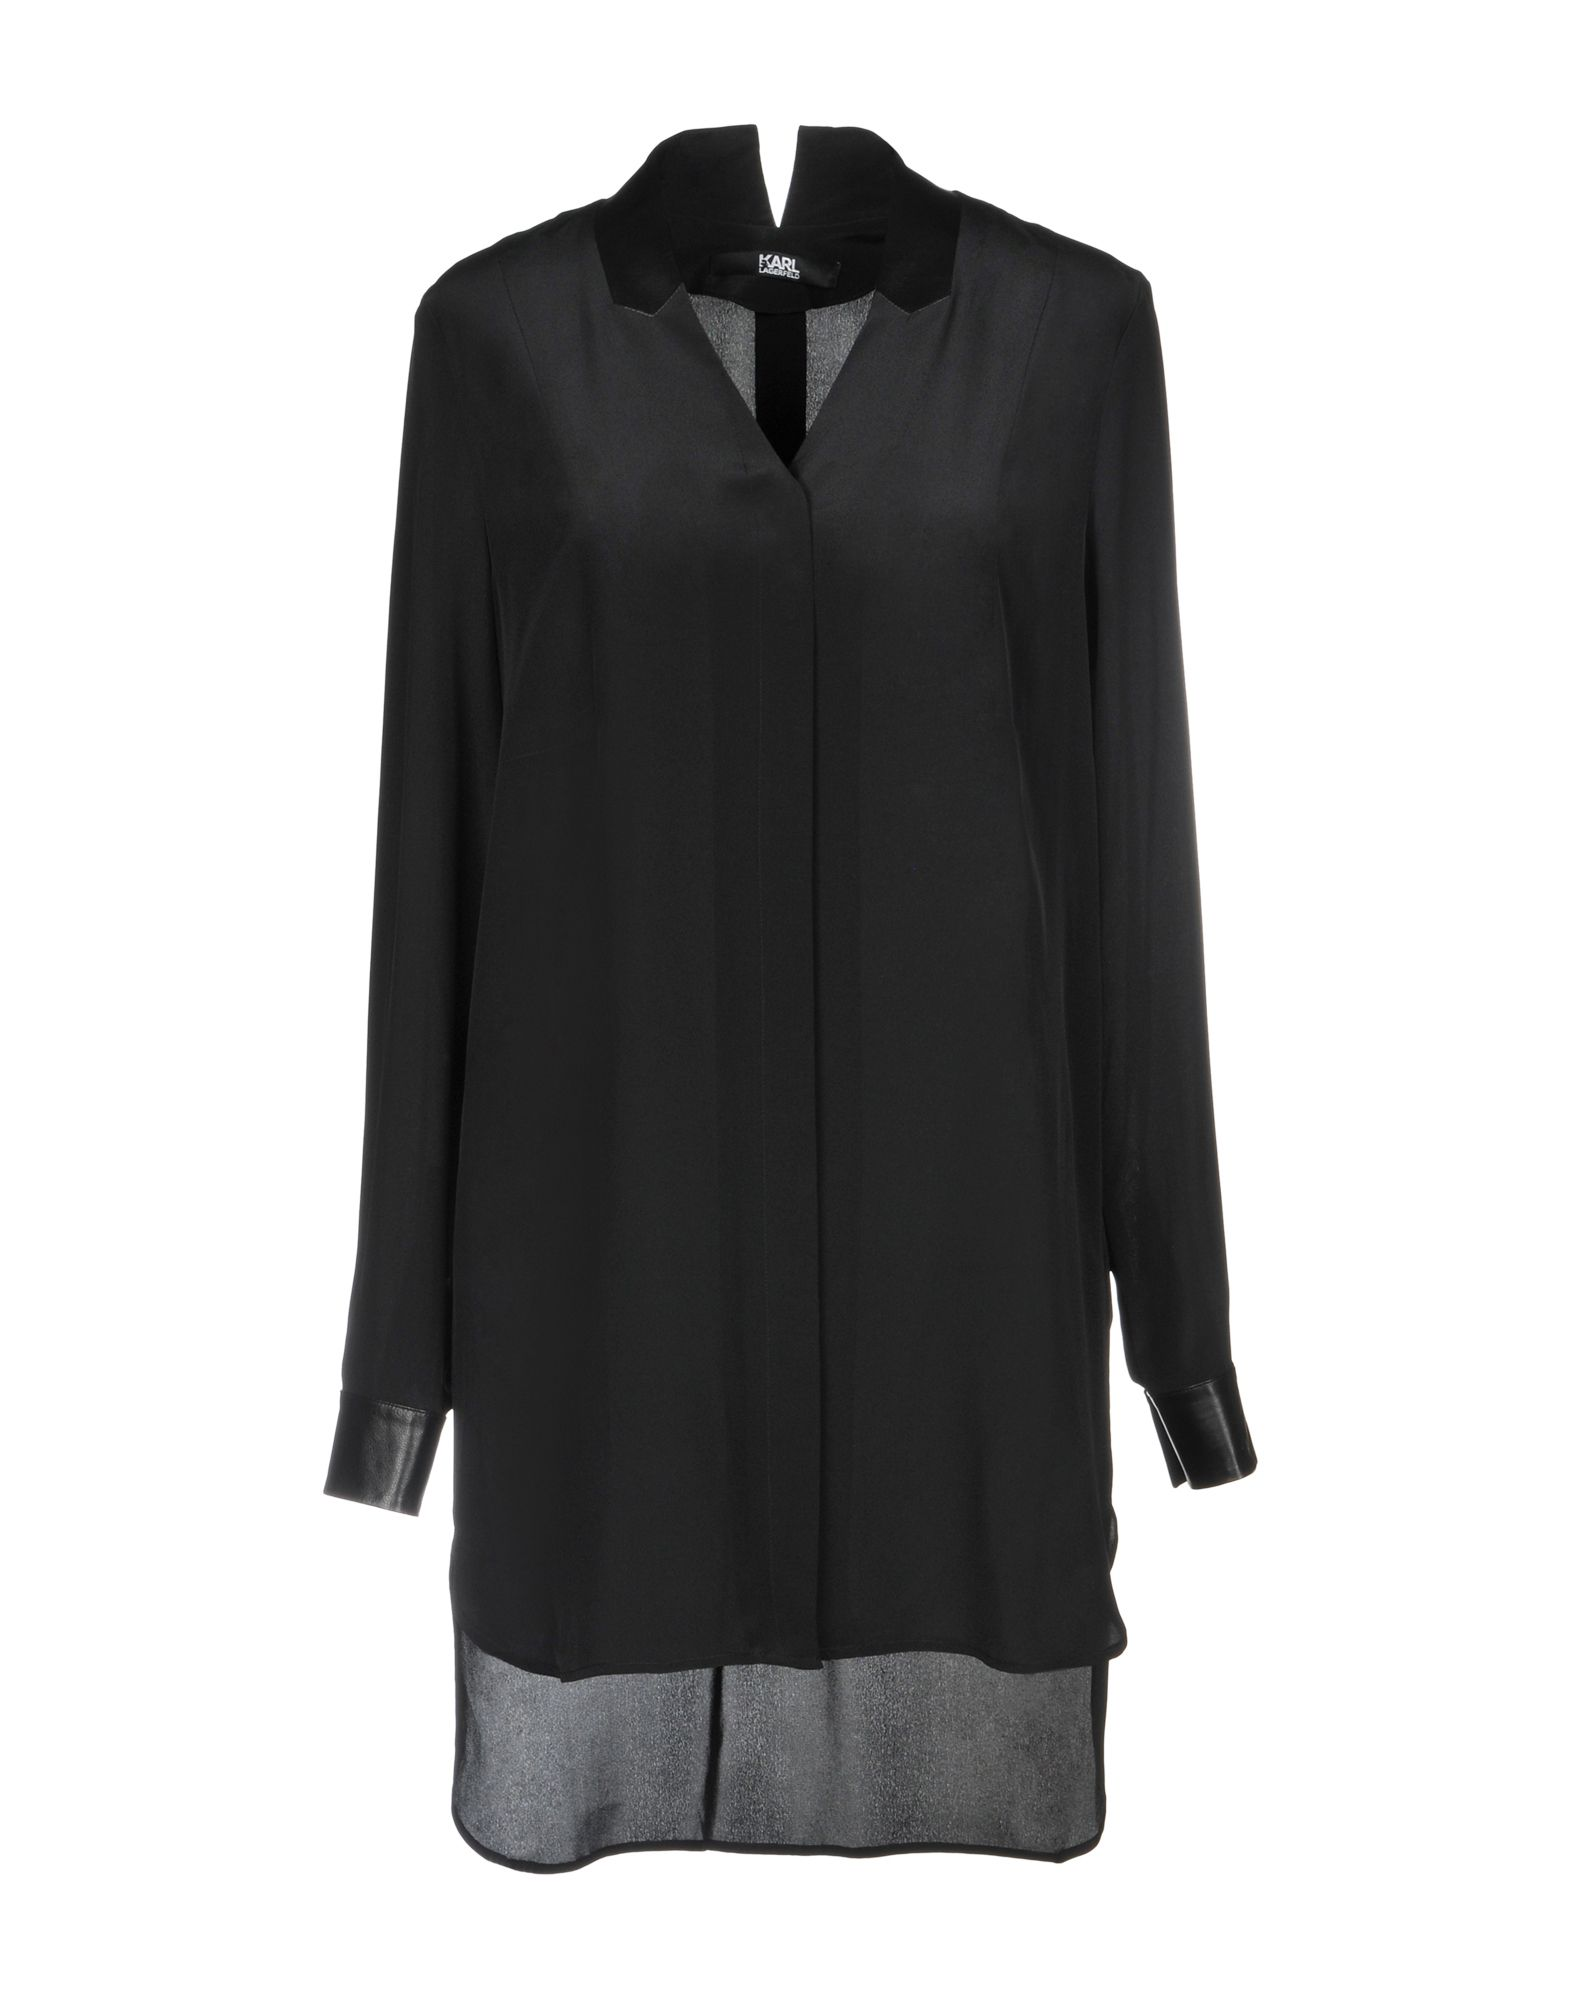 Silk Shirts & Blouses, Black